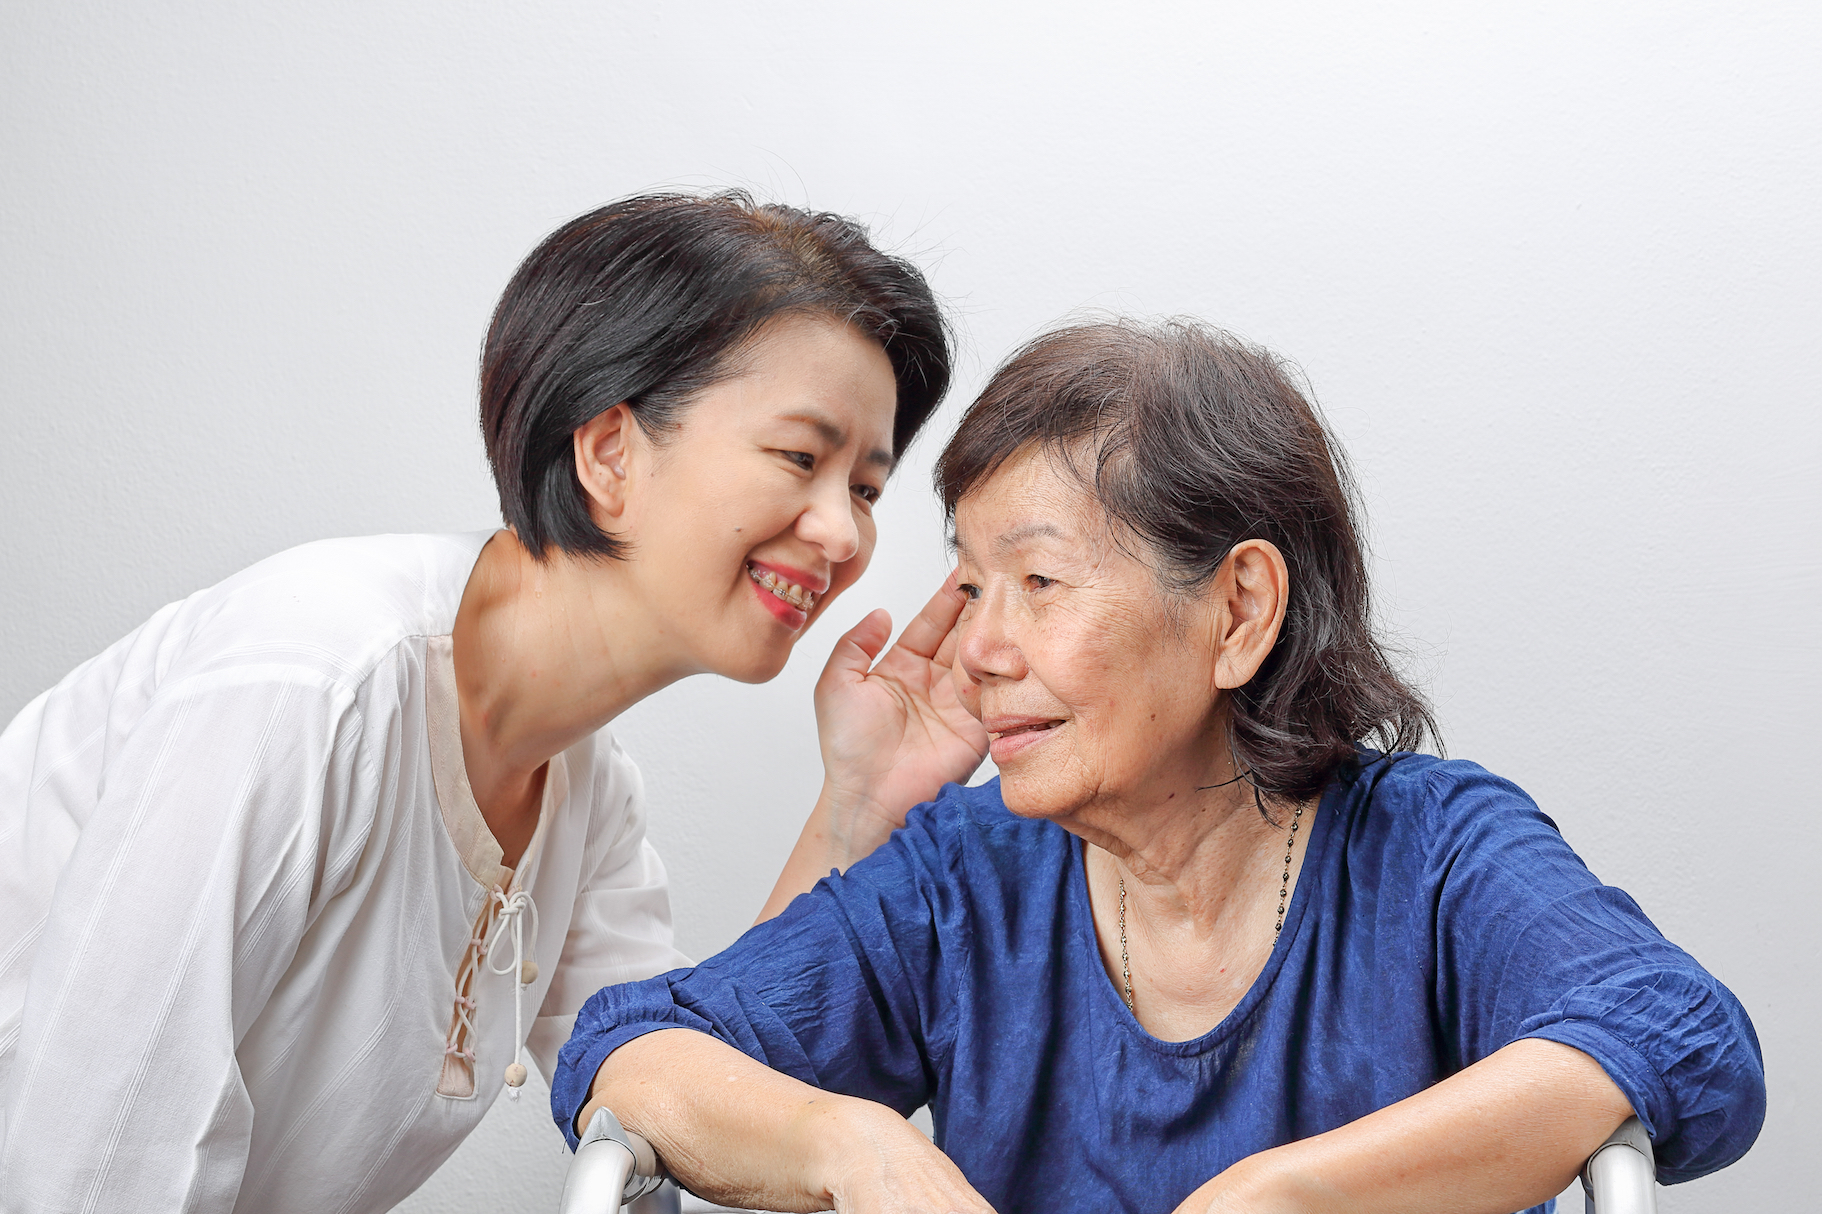 Hearing loss, especially in older adults and senior citizens, can wreak havoc on personal well-being and relationships.